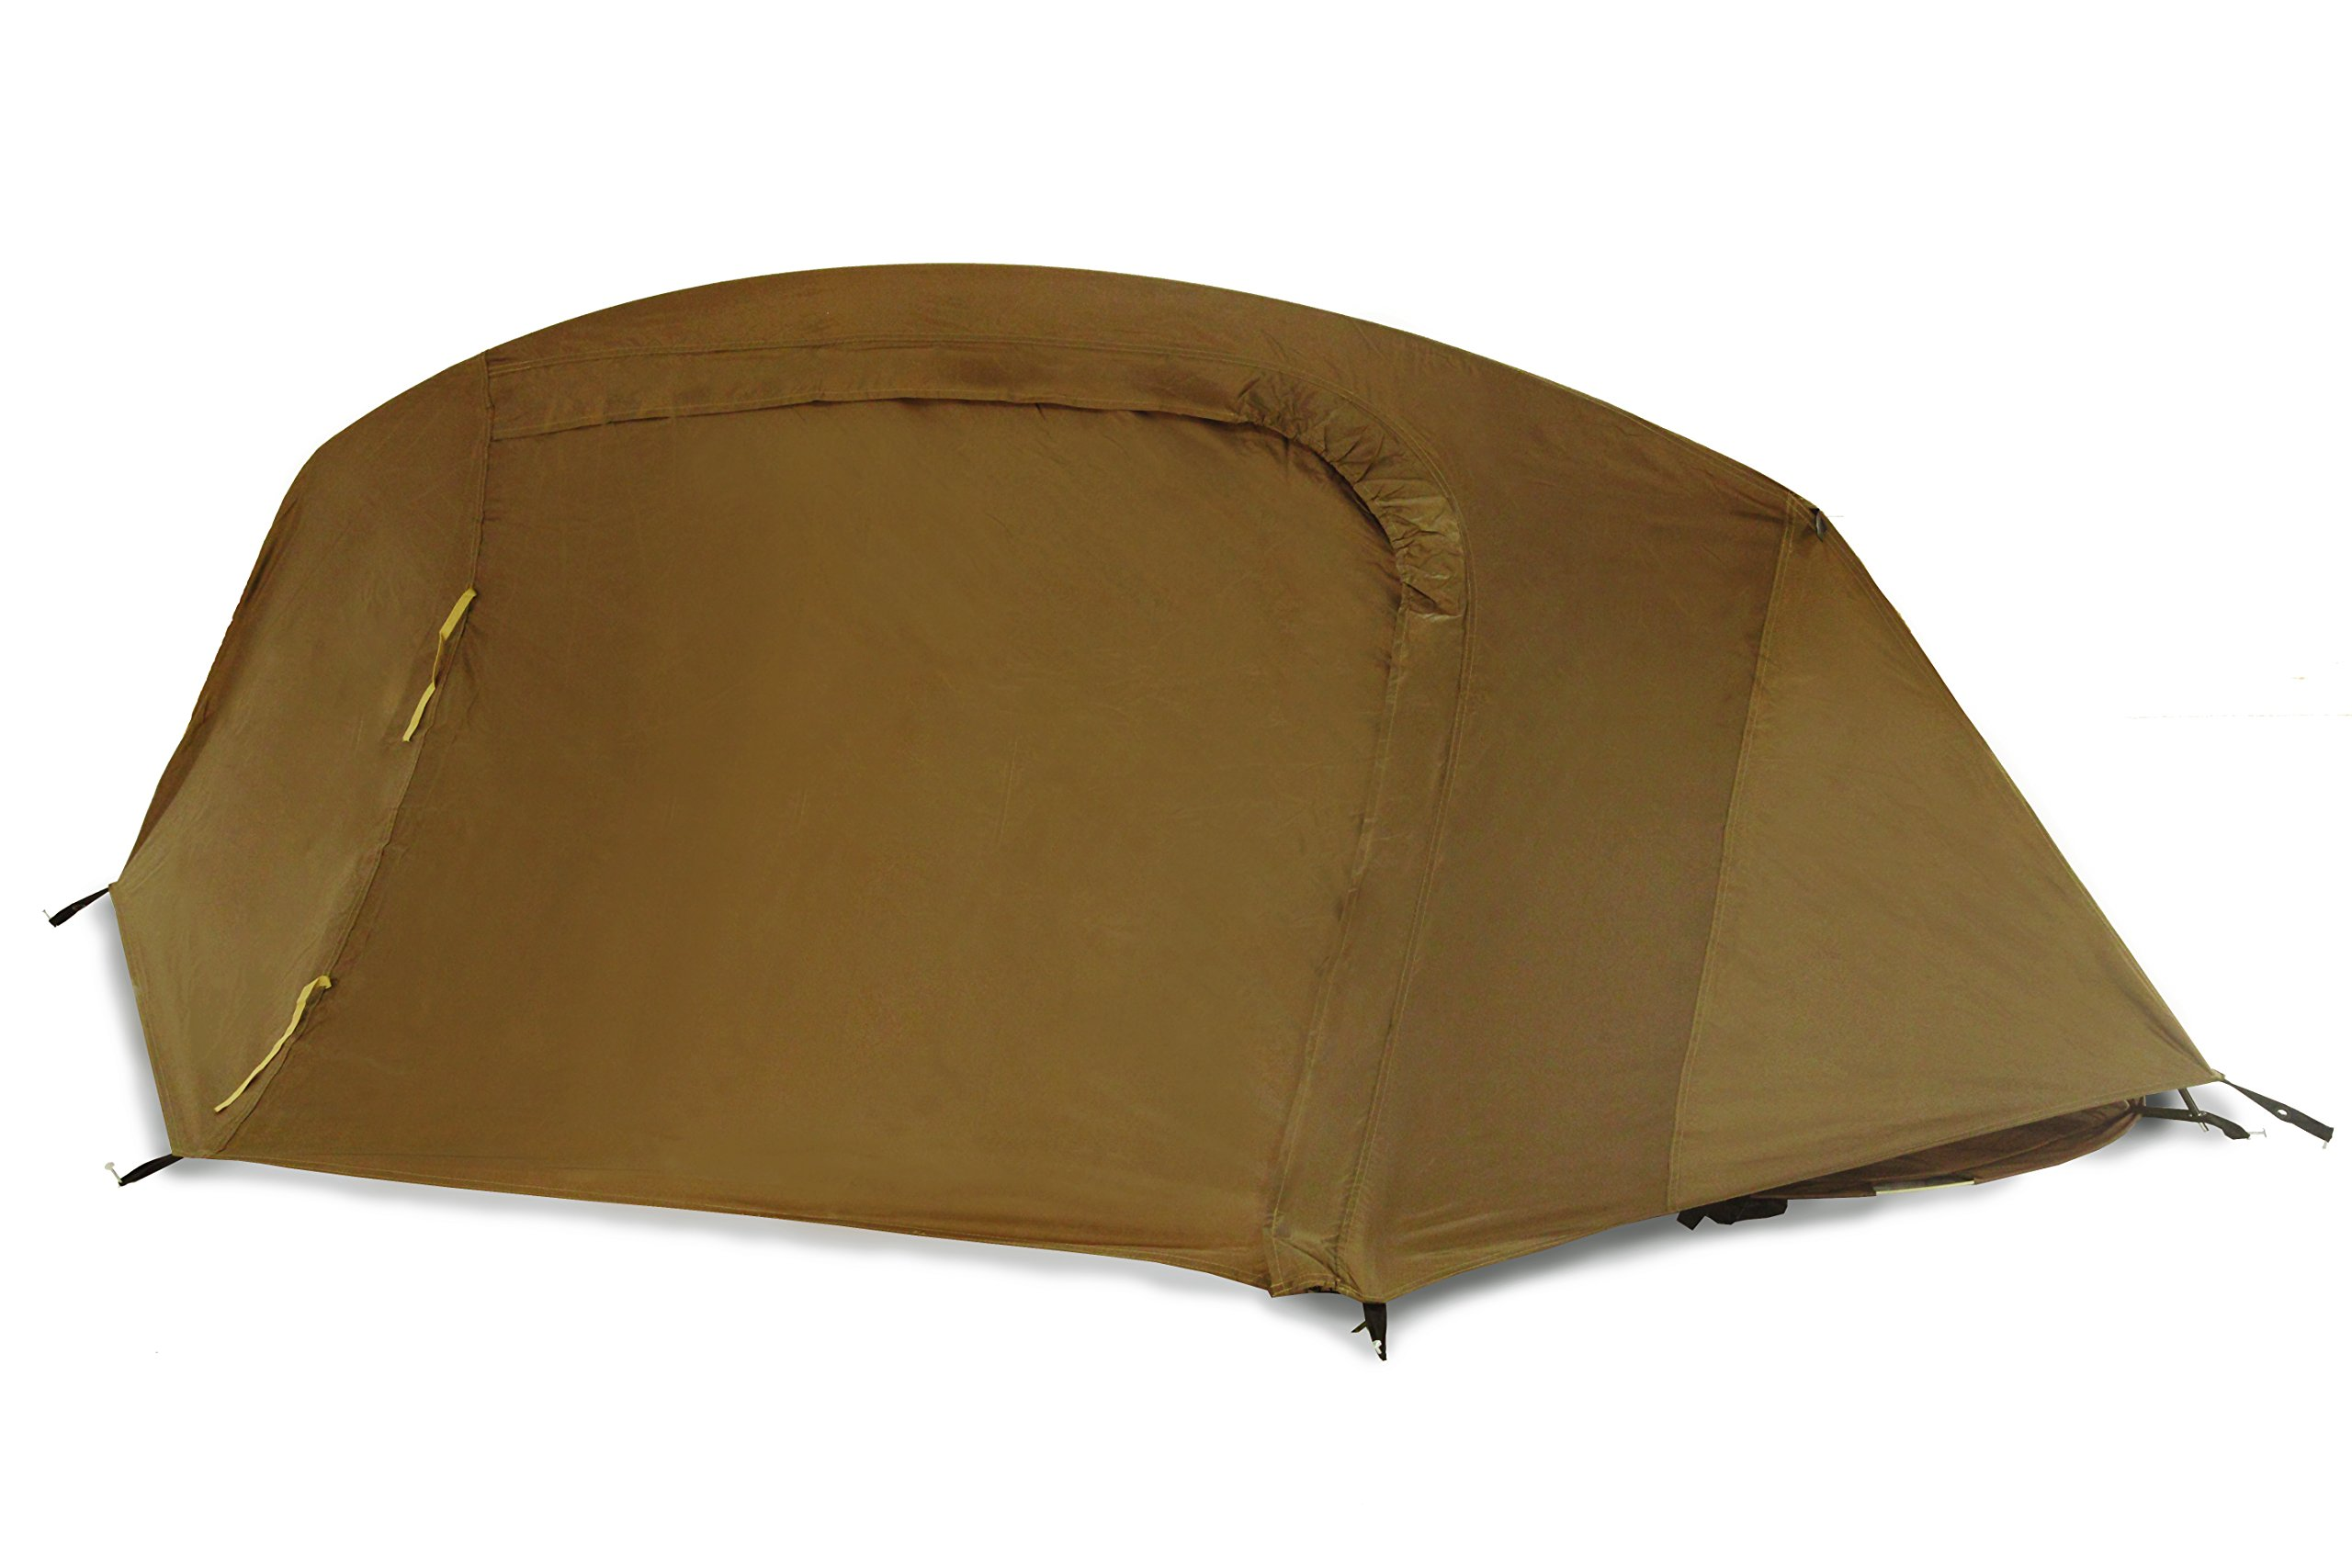 Catoma Adventure Shelters EBNS (Enhanced BedNet System) Coyote Brown 64561F by CATOMA (Image #1)